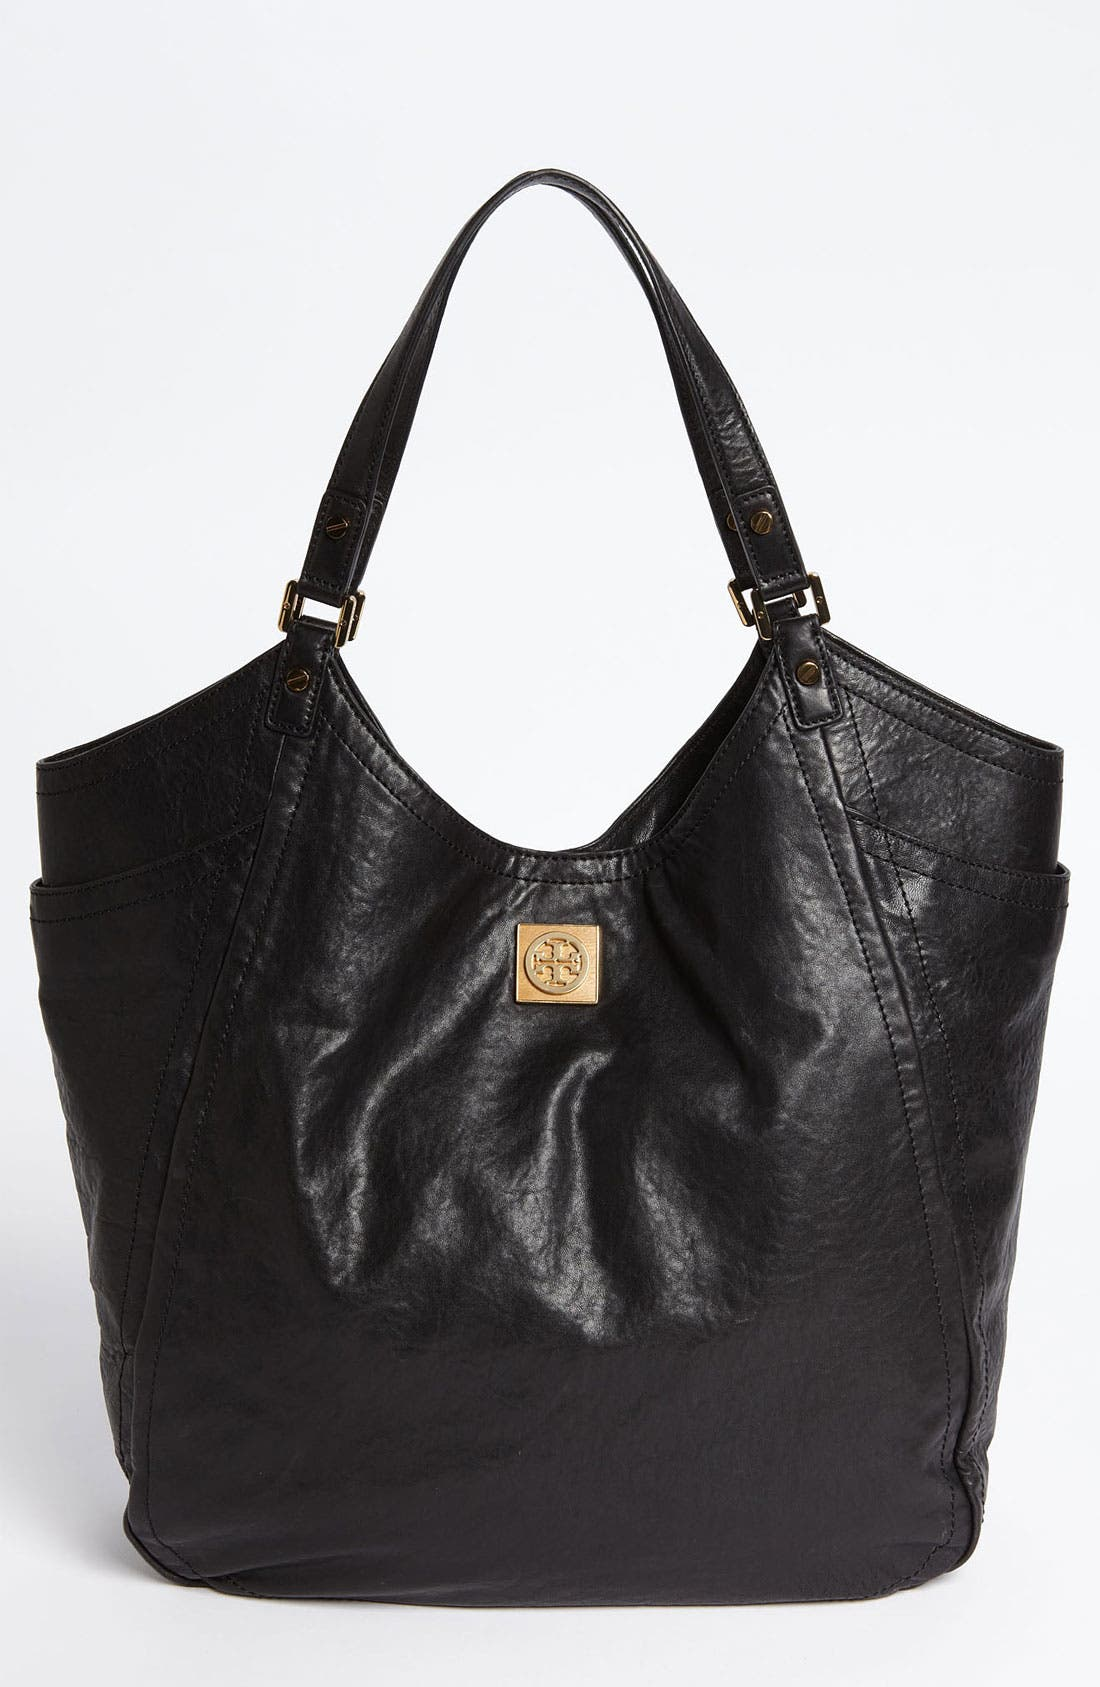 Main Image - Tory Burch 'Louiisa - Slouchy' Leather Tote